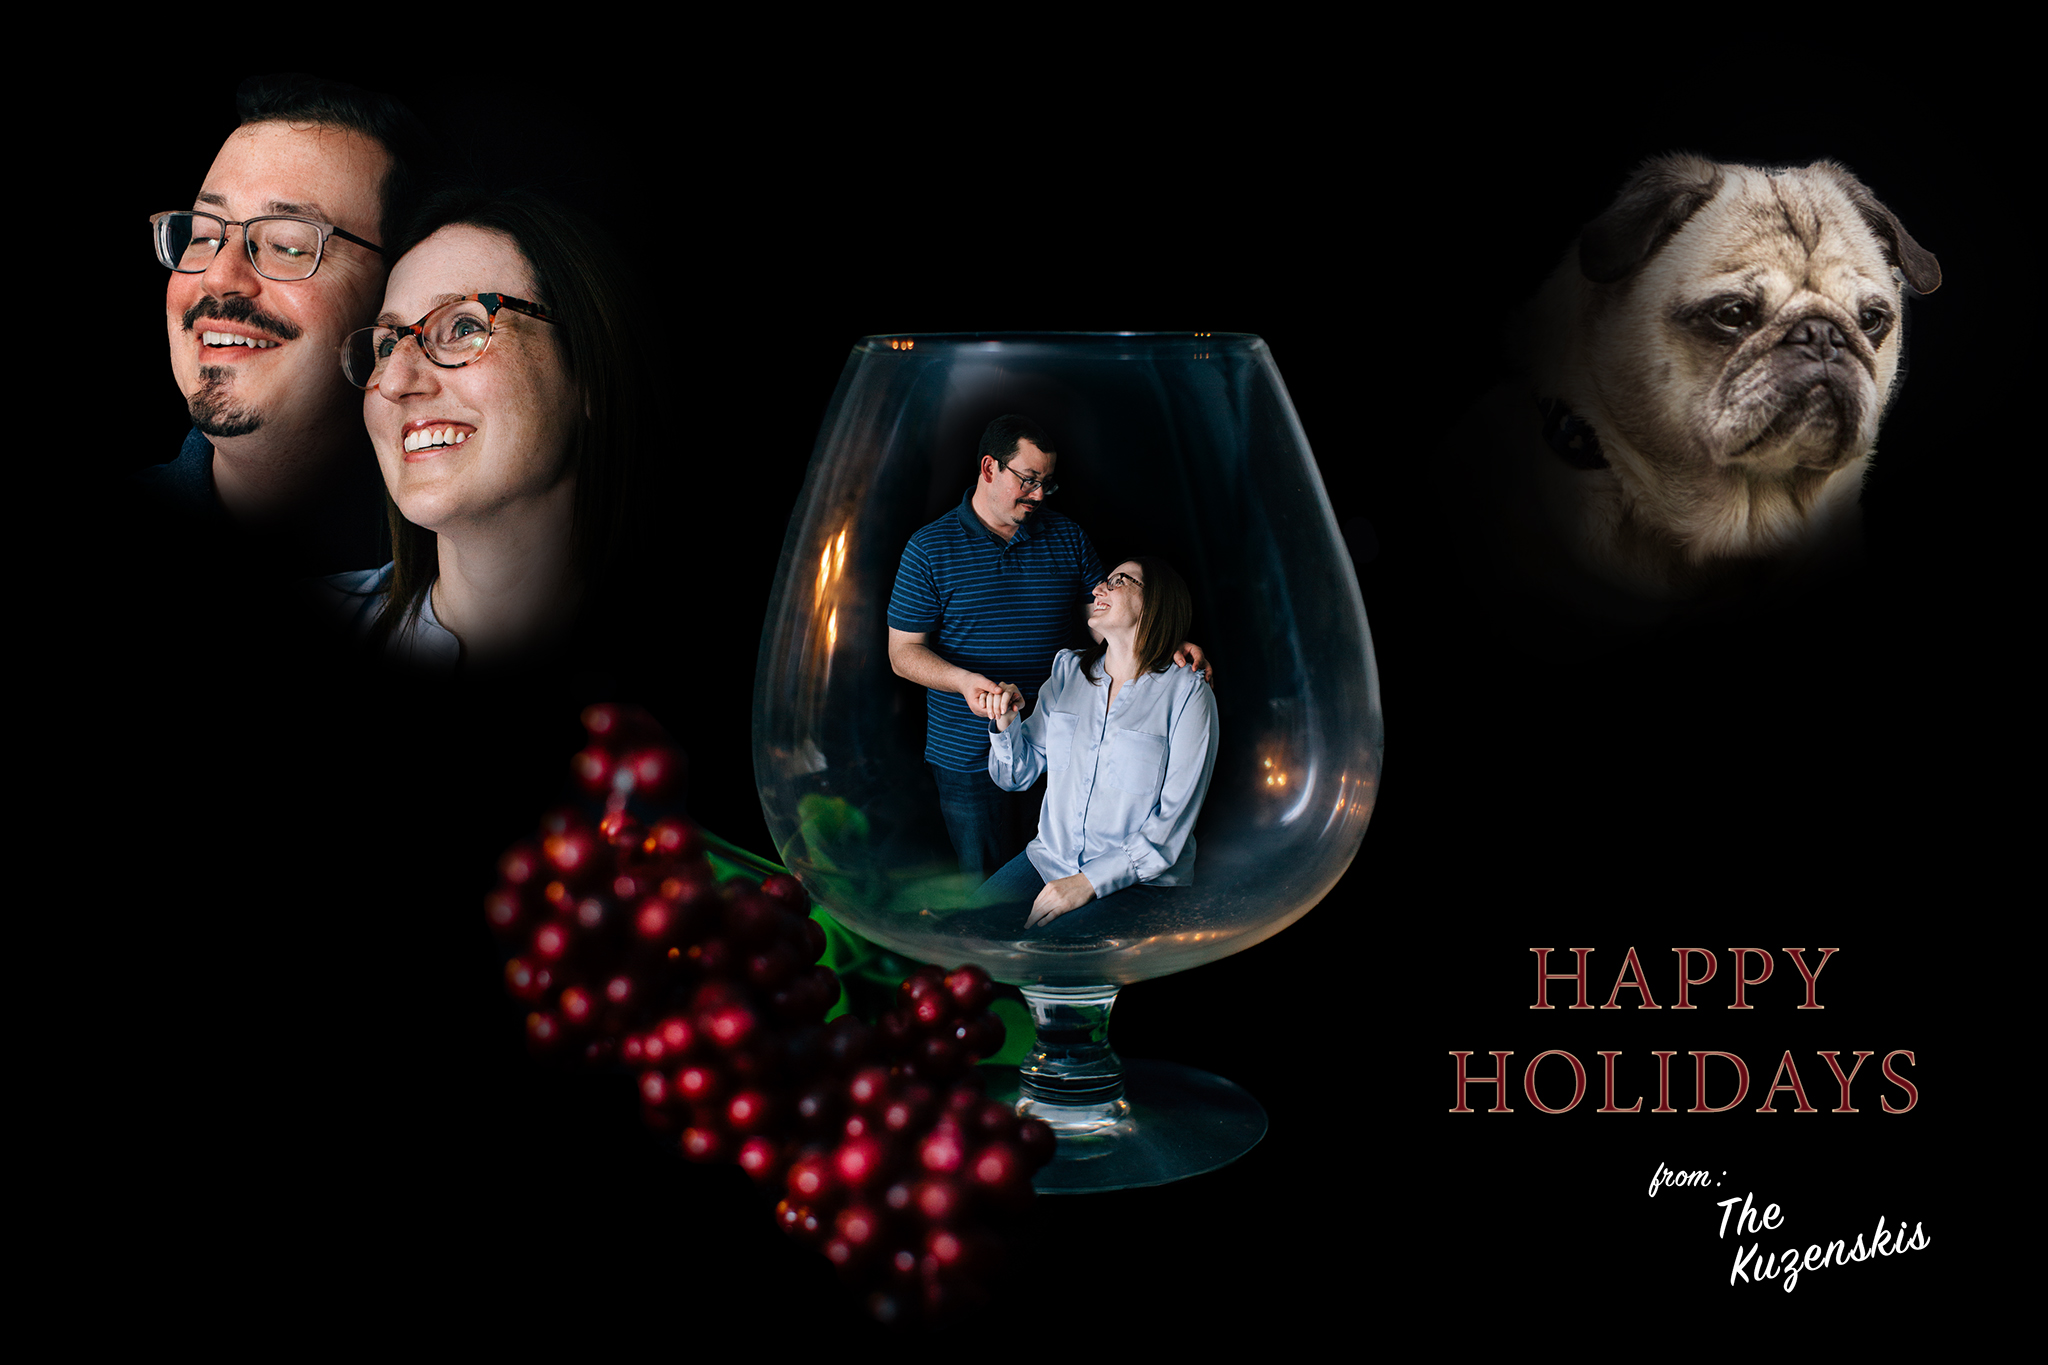 John and Brandy Kuzenski with Max on derpy holiday card